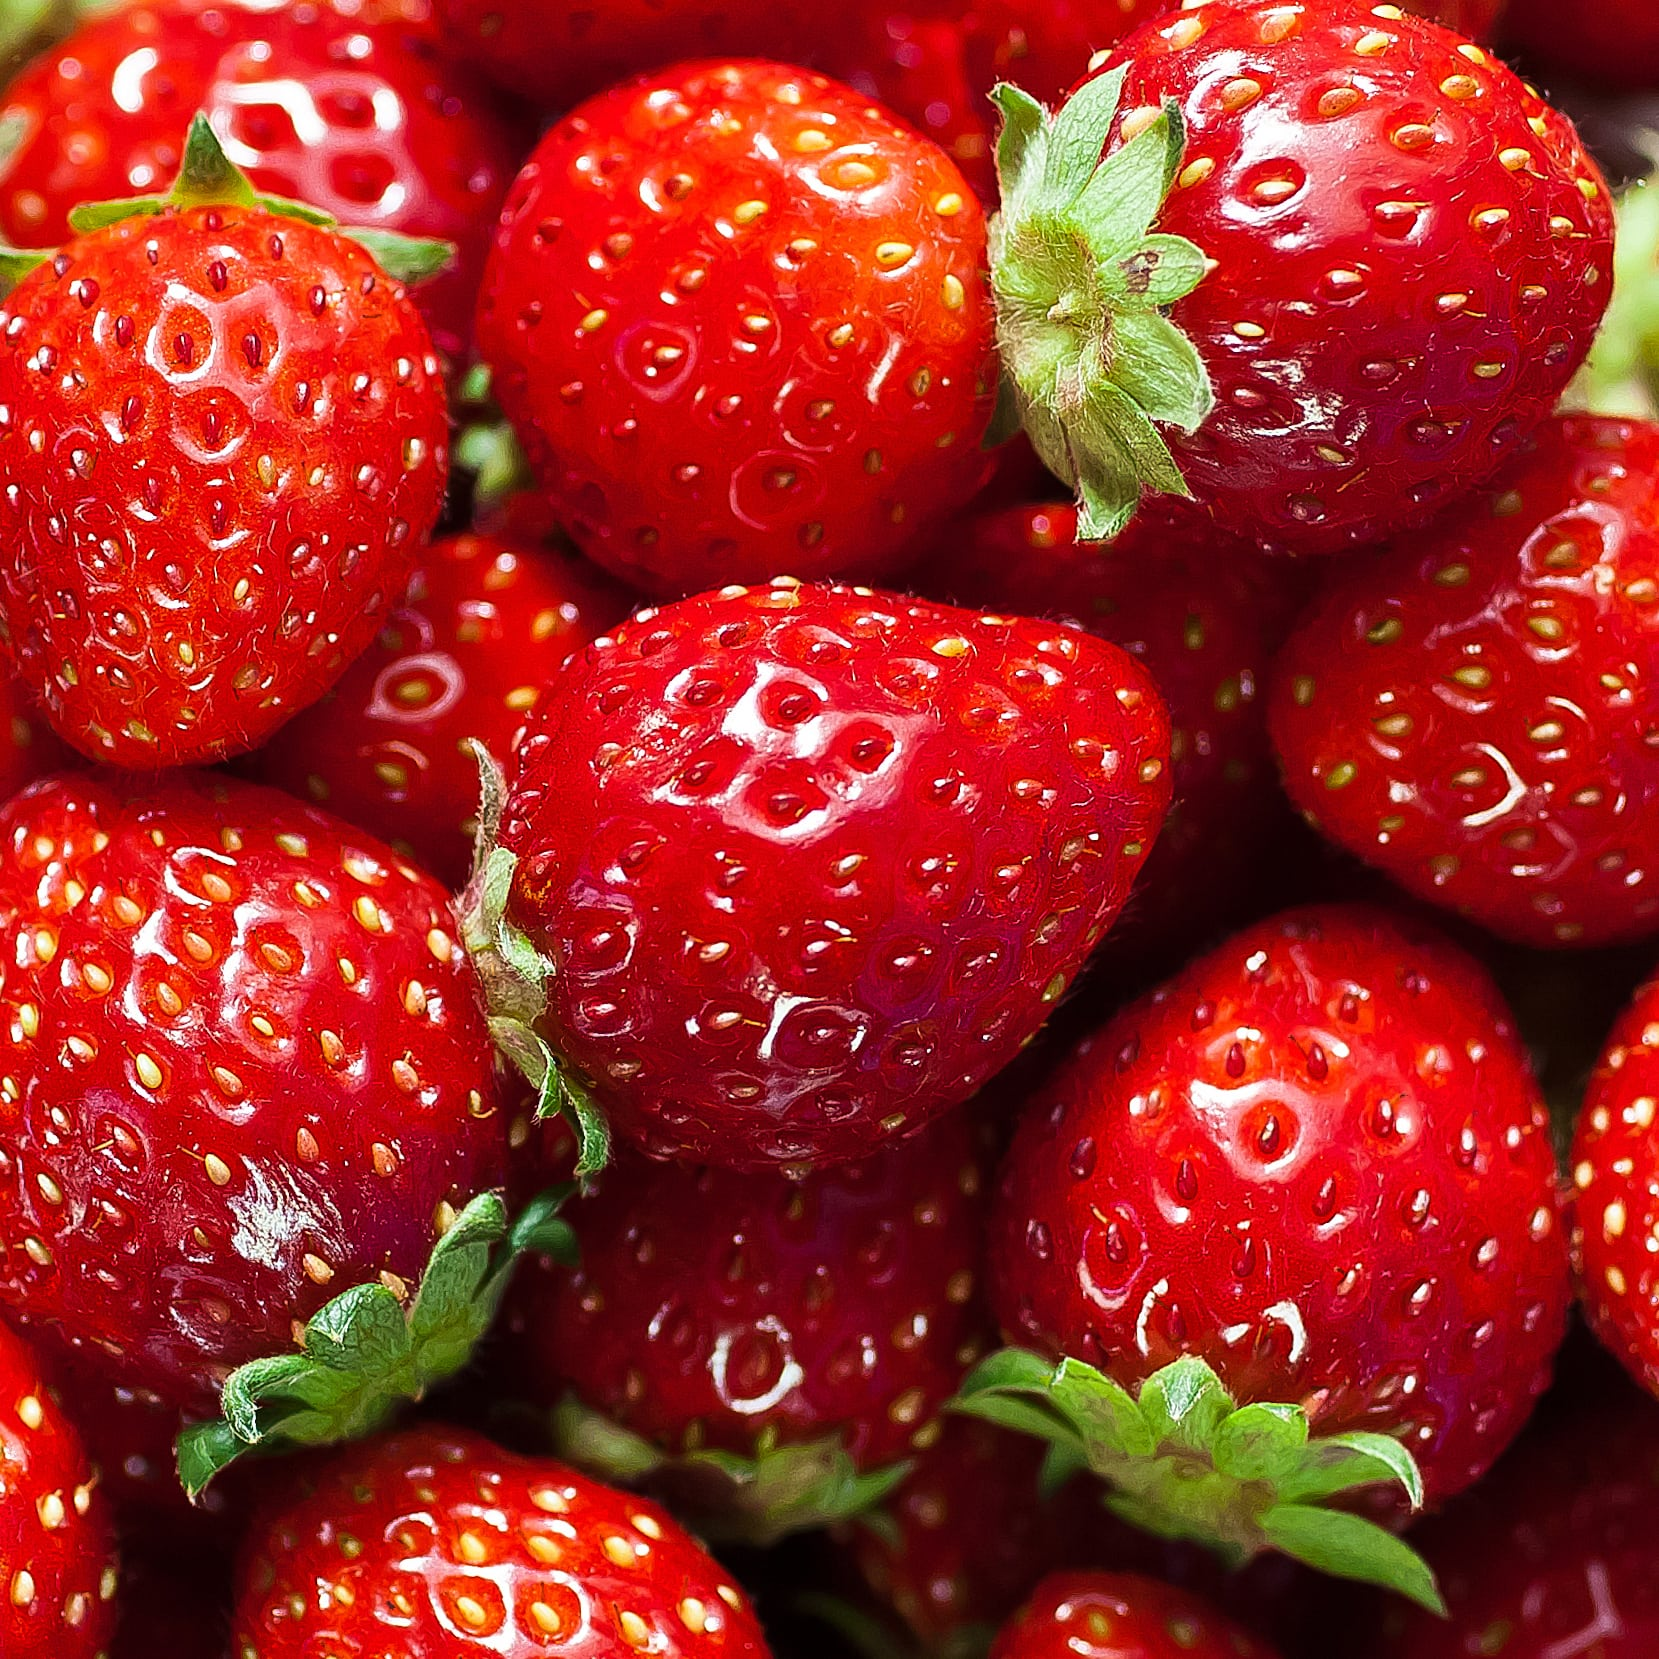 shot of many ripe strawberries